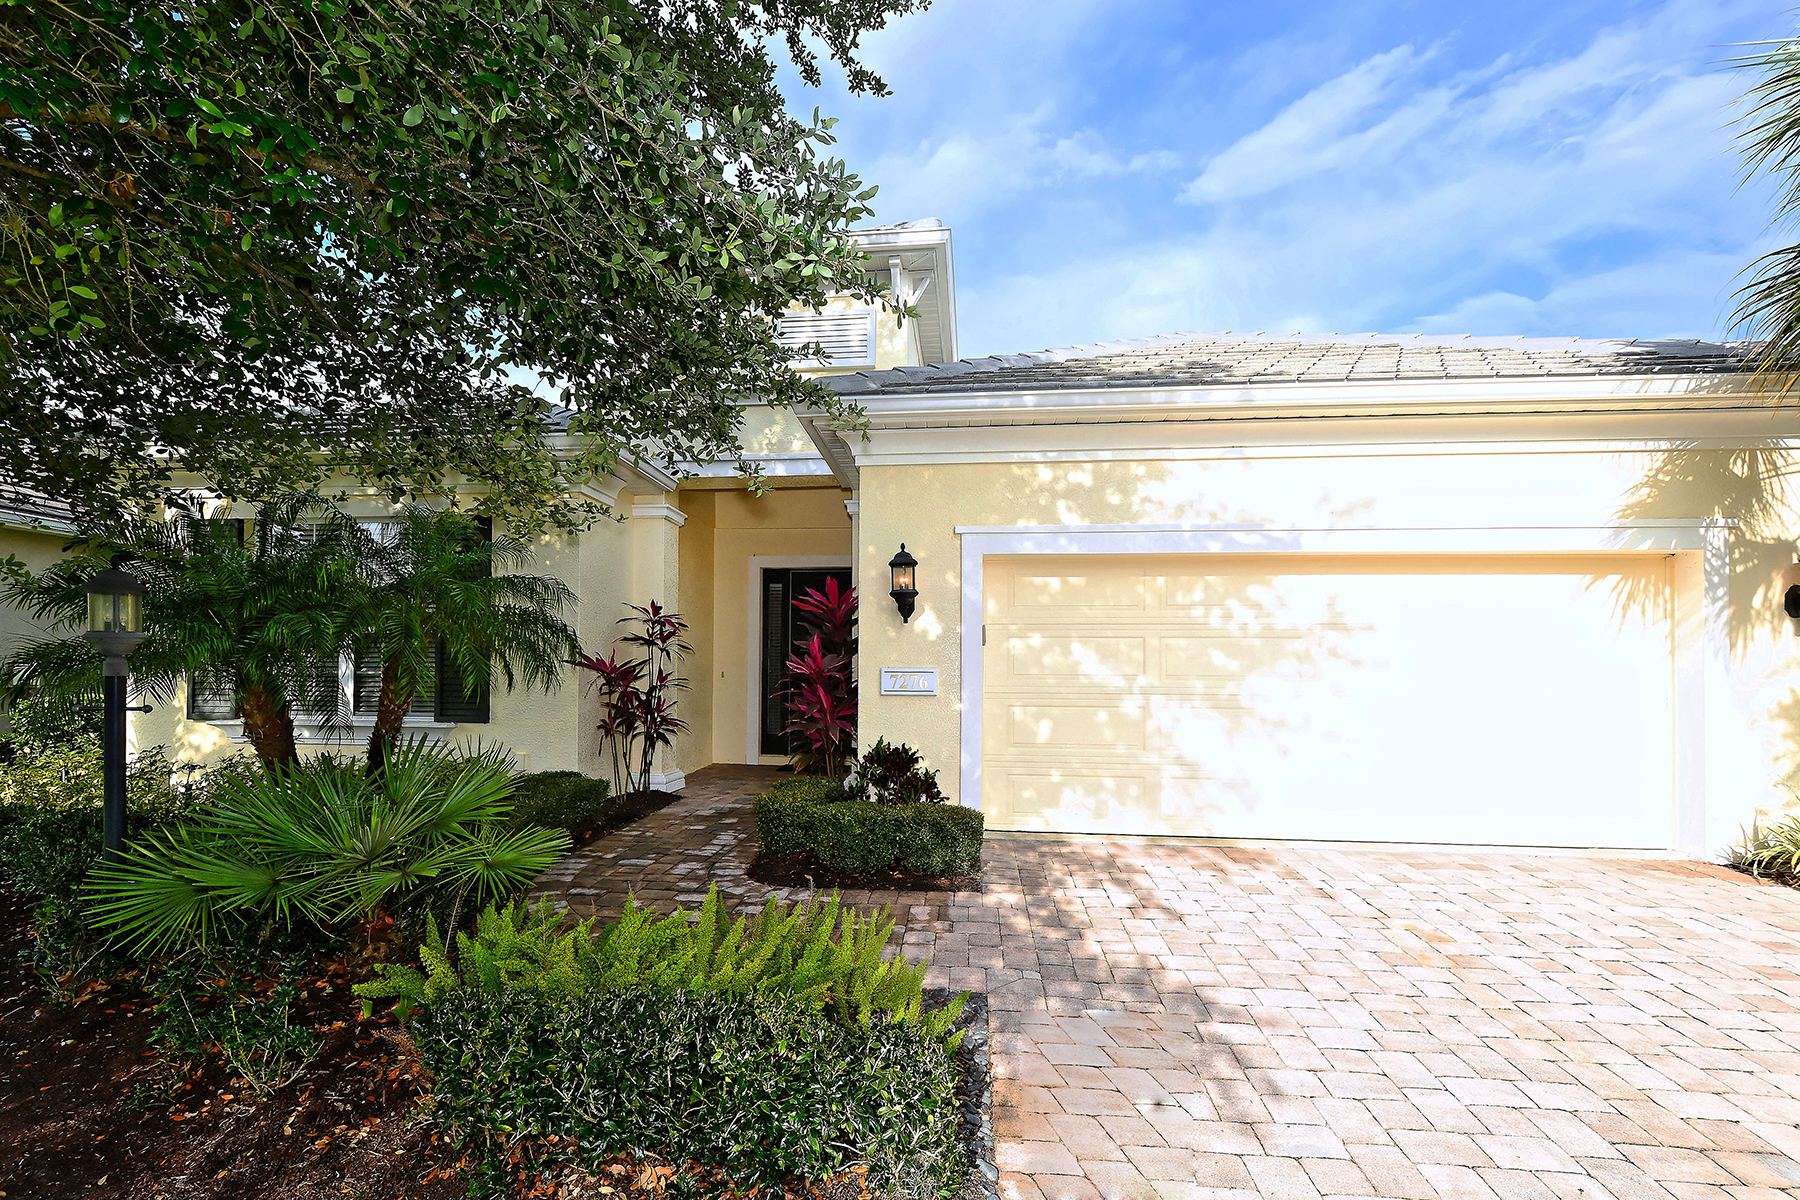 Single Family Home for Sale at LAKEWOOD RANCH - LISMORE 7276 Lismore Ct Lakewood Ranch, Florida, 34202 United States